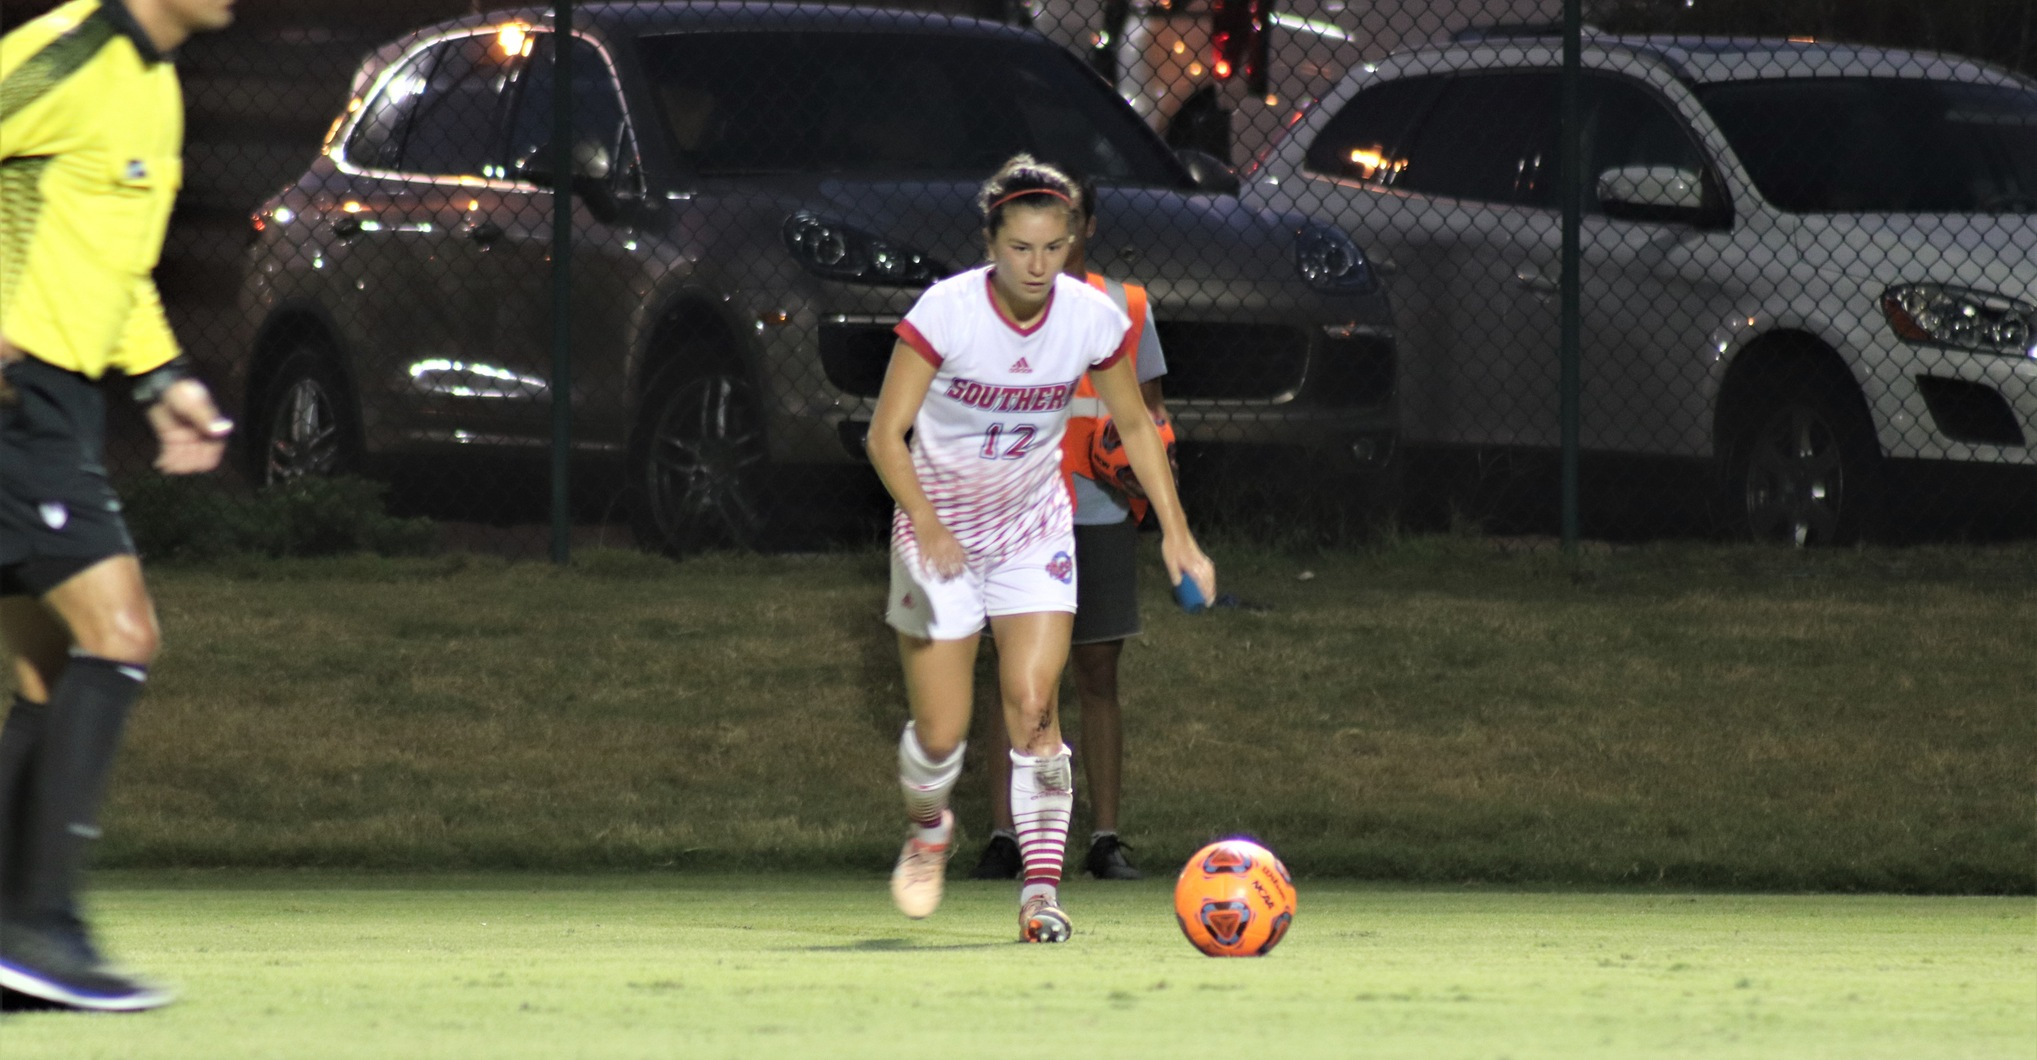 Florida Southern Holds High-Scoring Nova Southeastern to One Goal in Overtime Loss